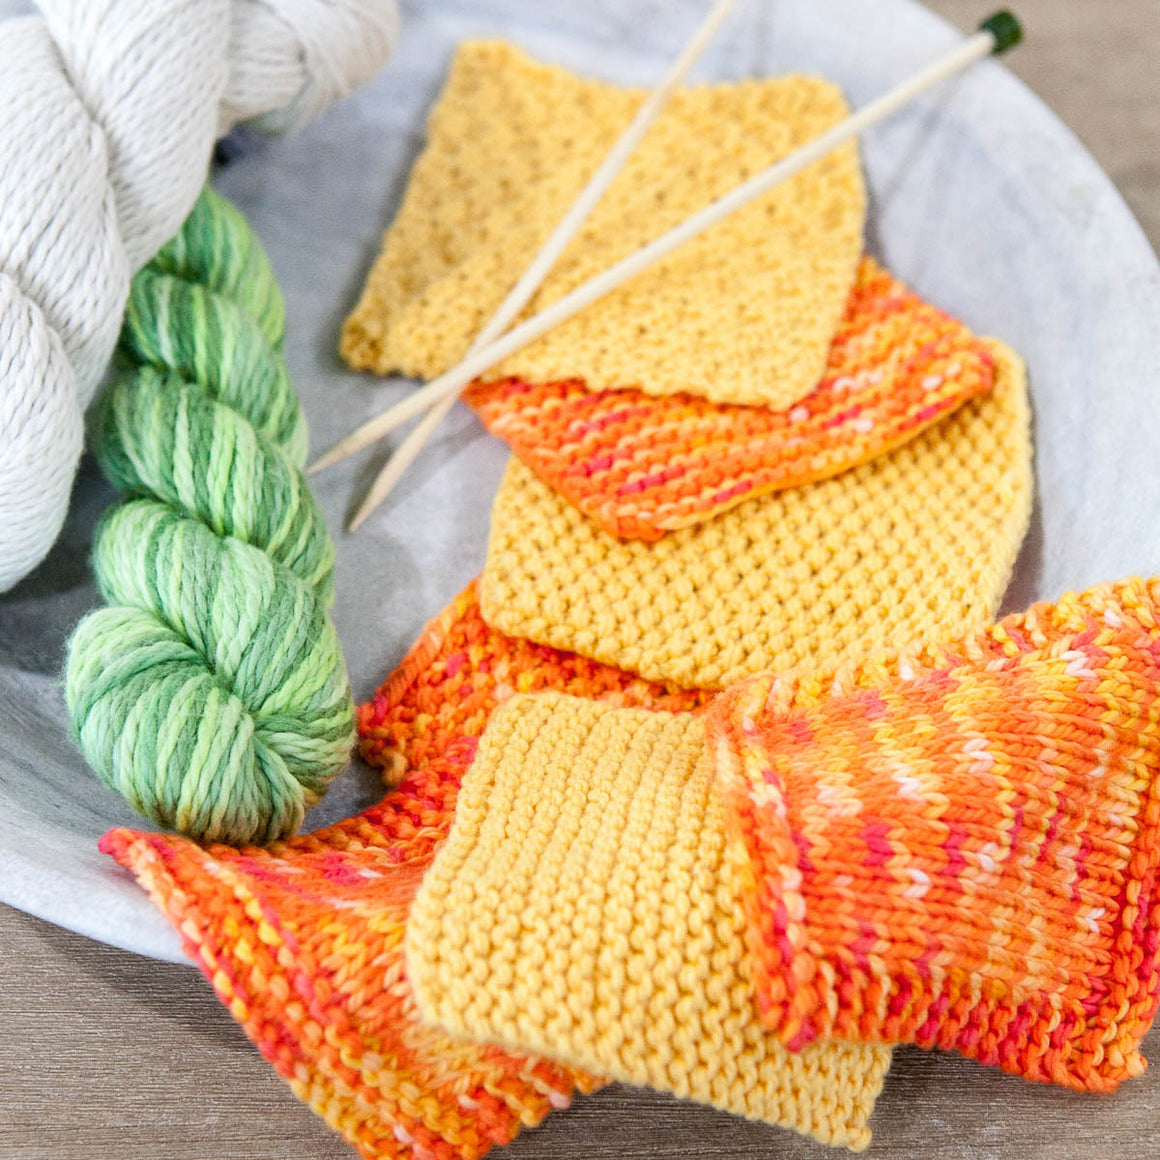 Class: Knit Express - Learn to Knit for Free!